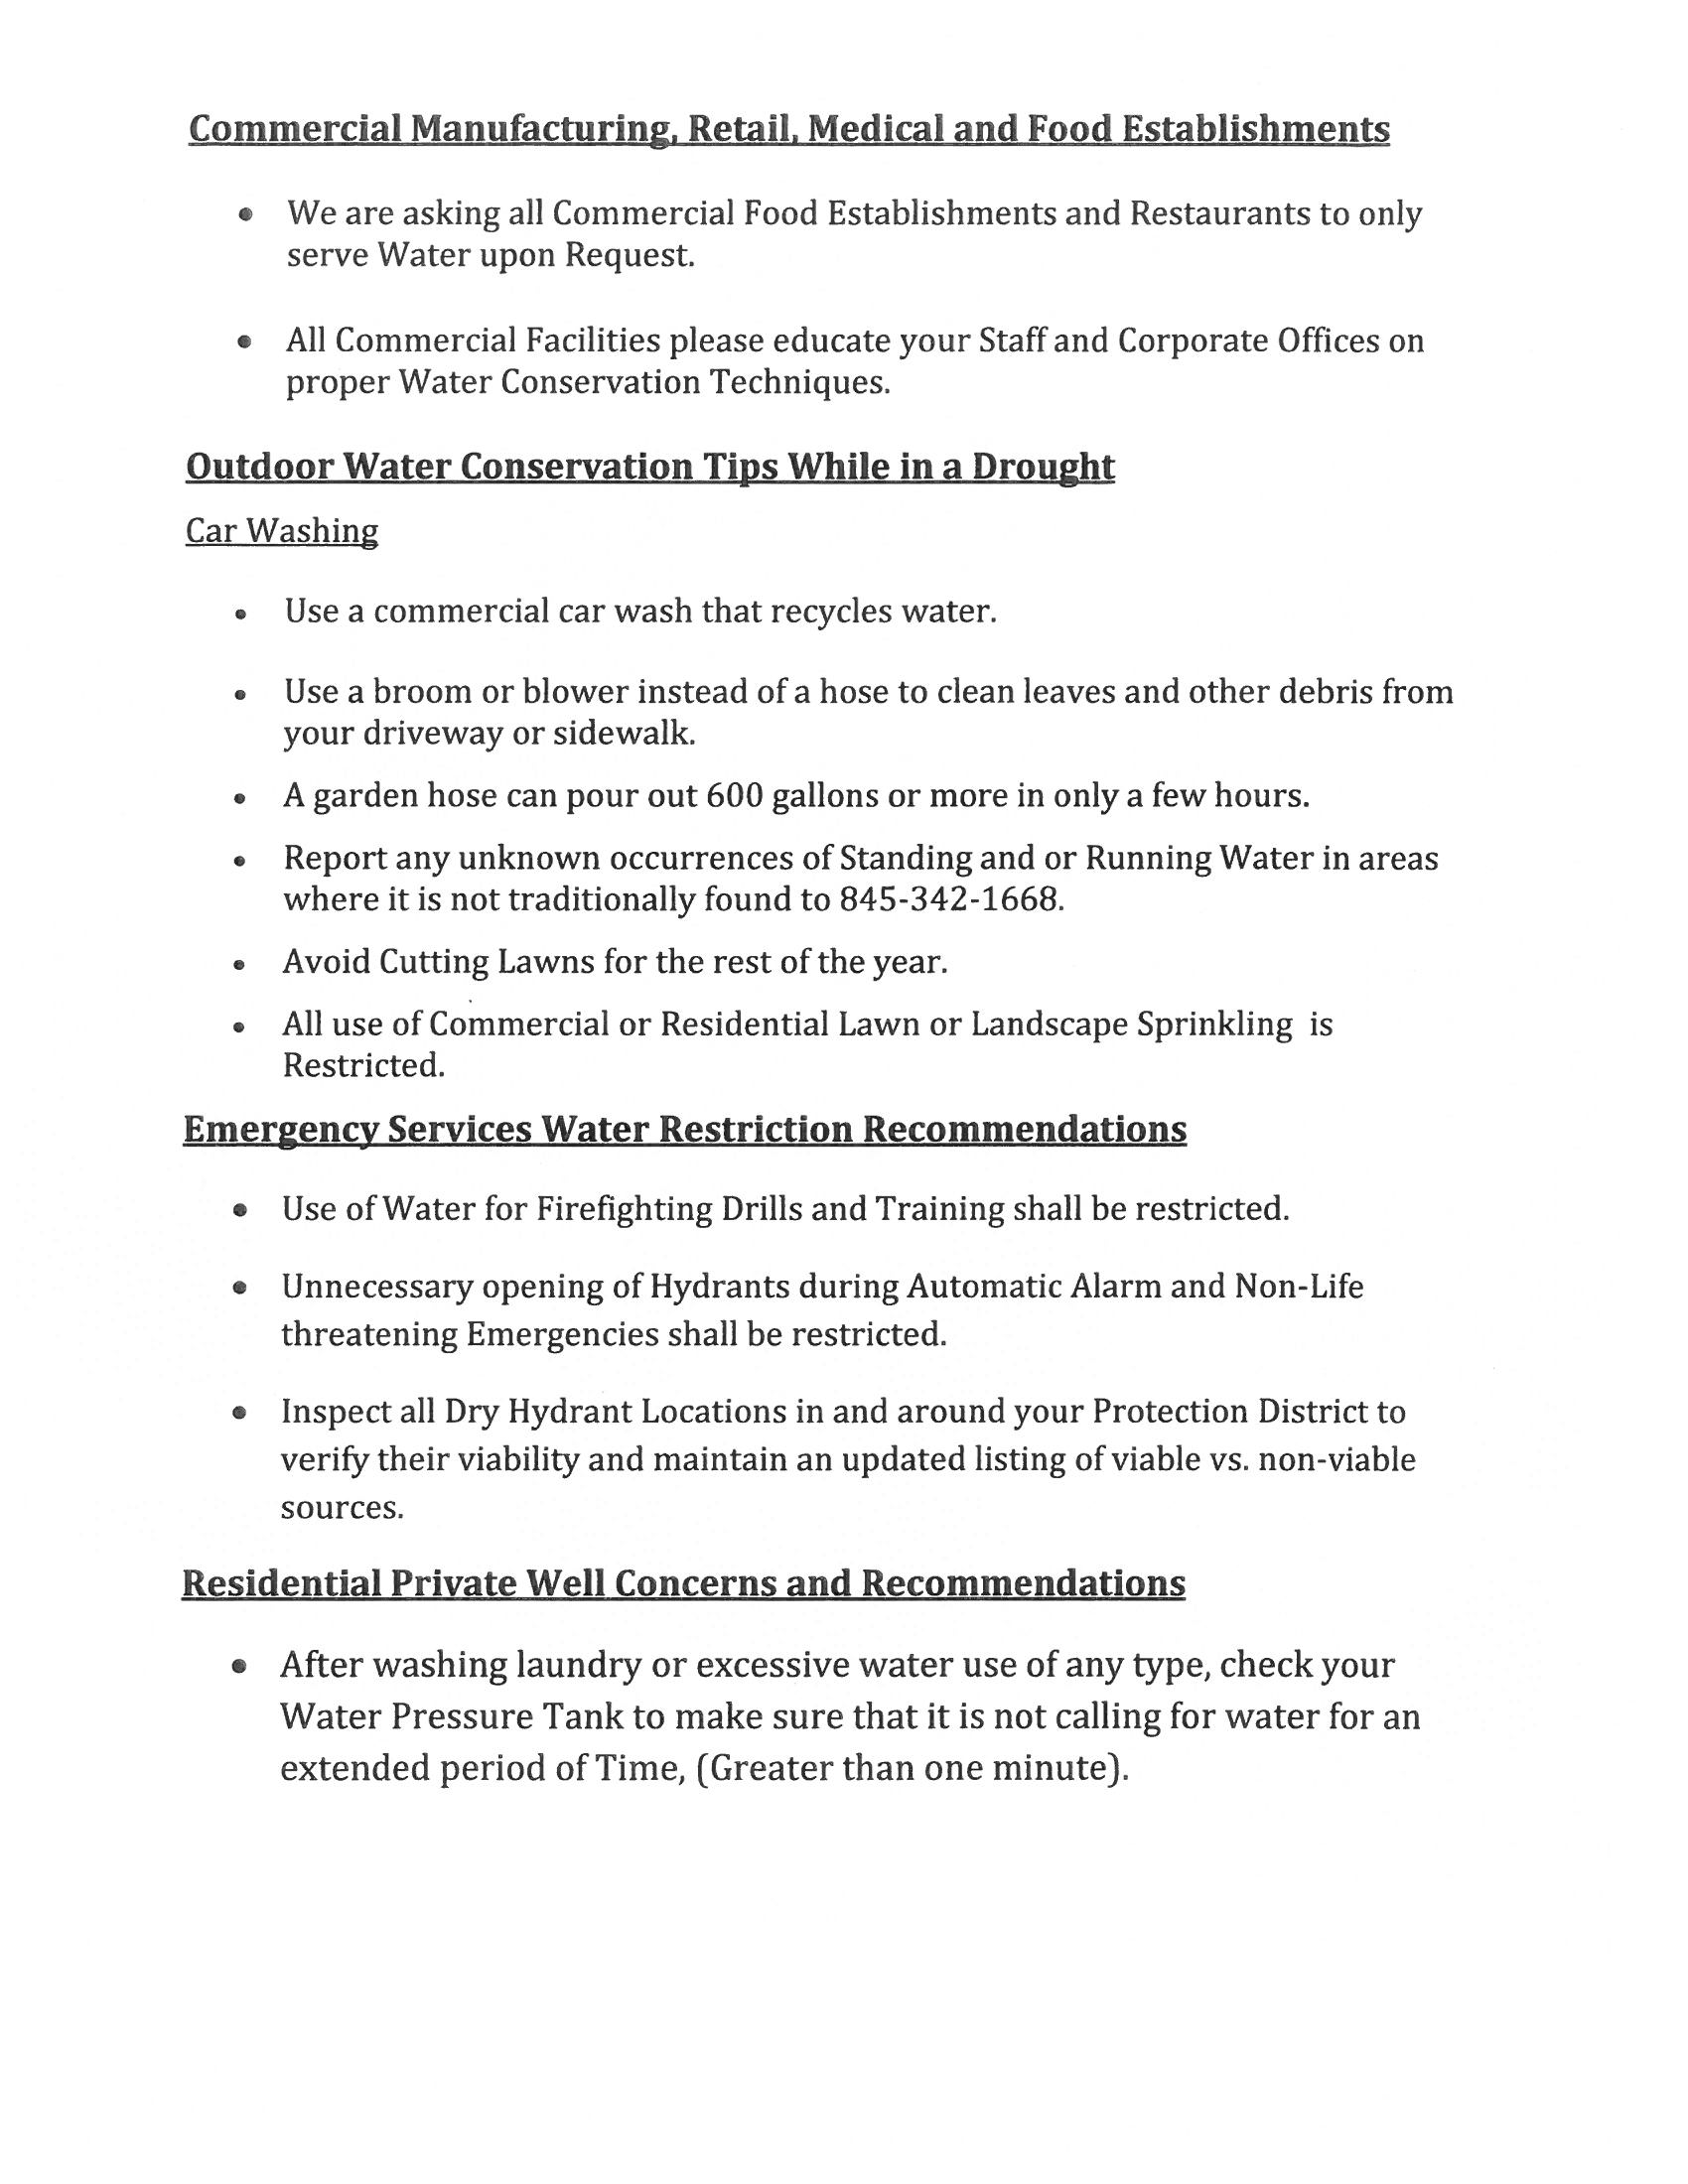 Voluntary Water Restrictions 3